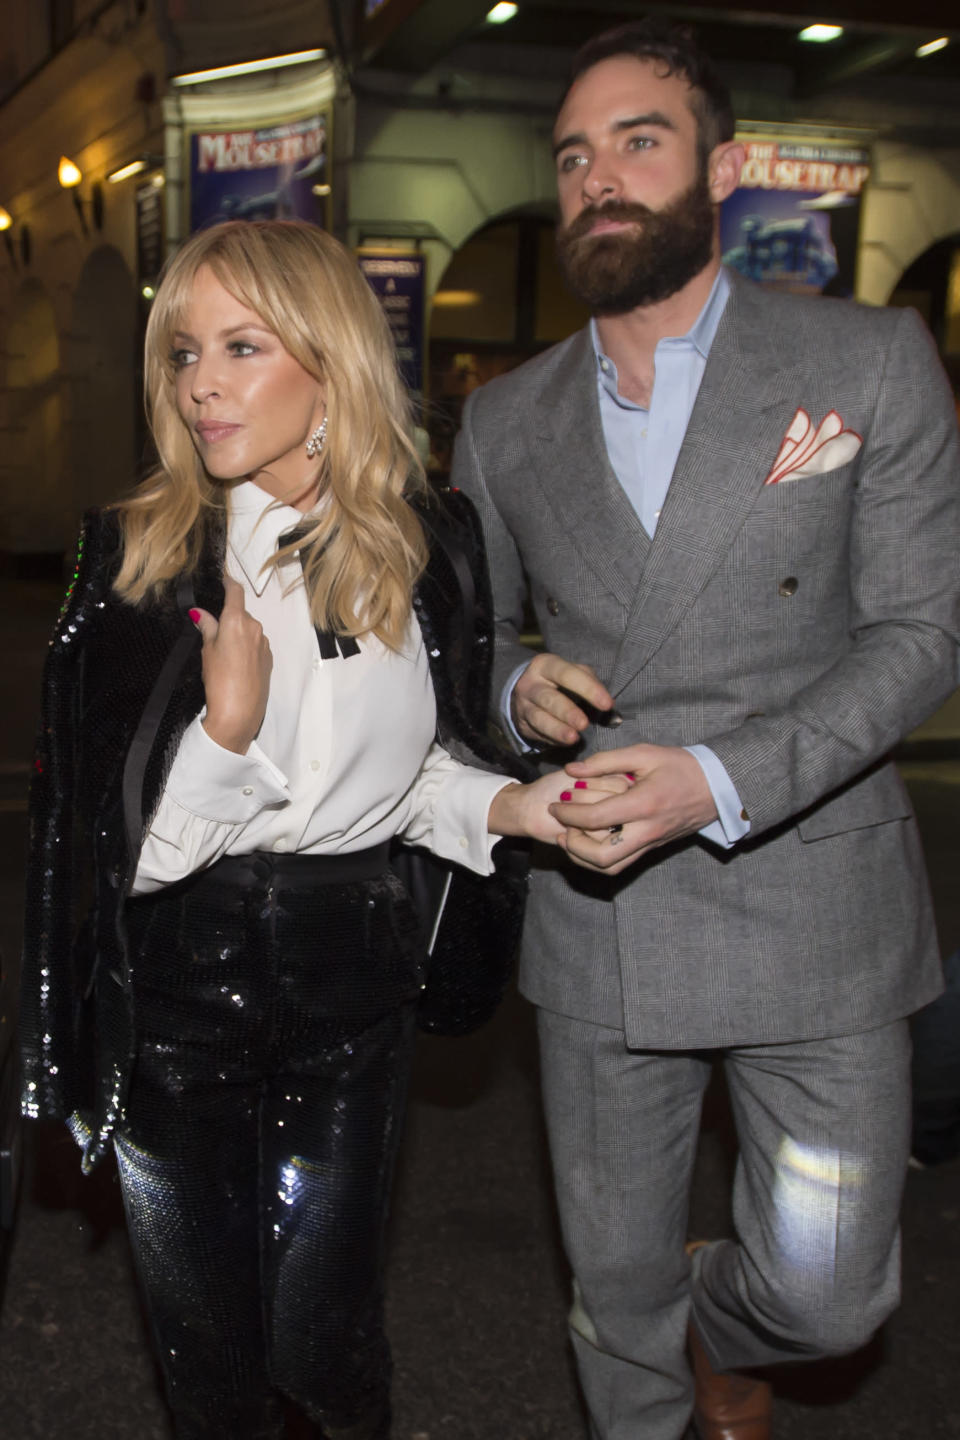 Kylie and her ex-fiance. (PA)